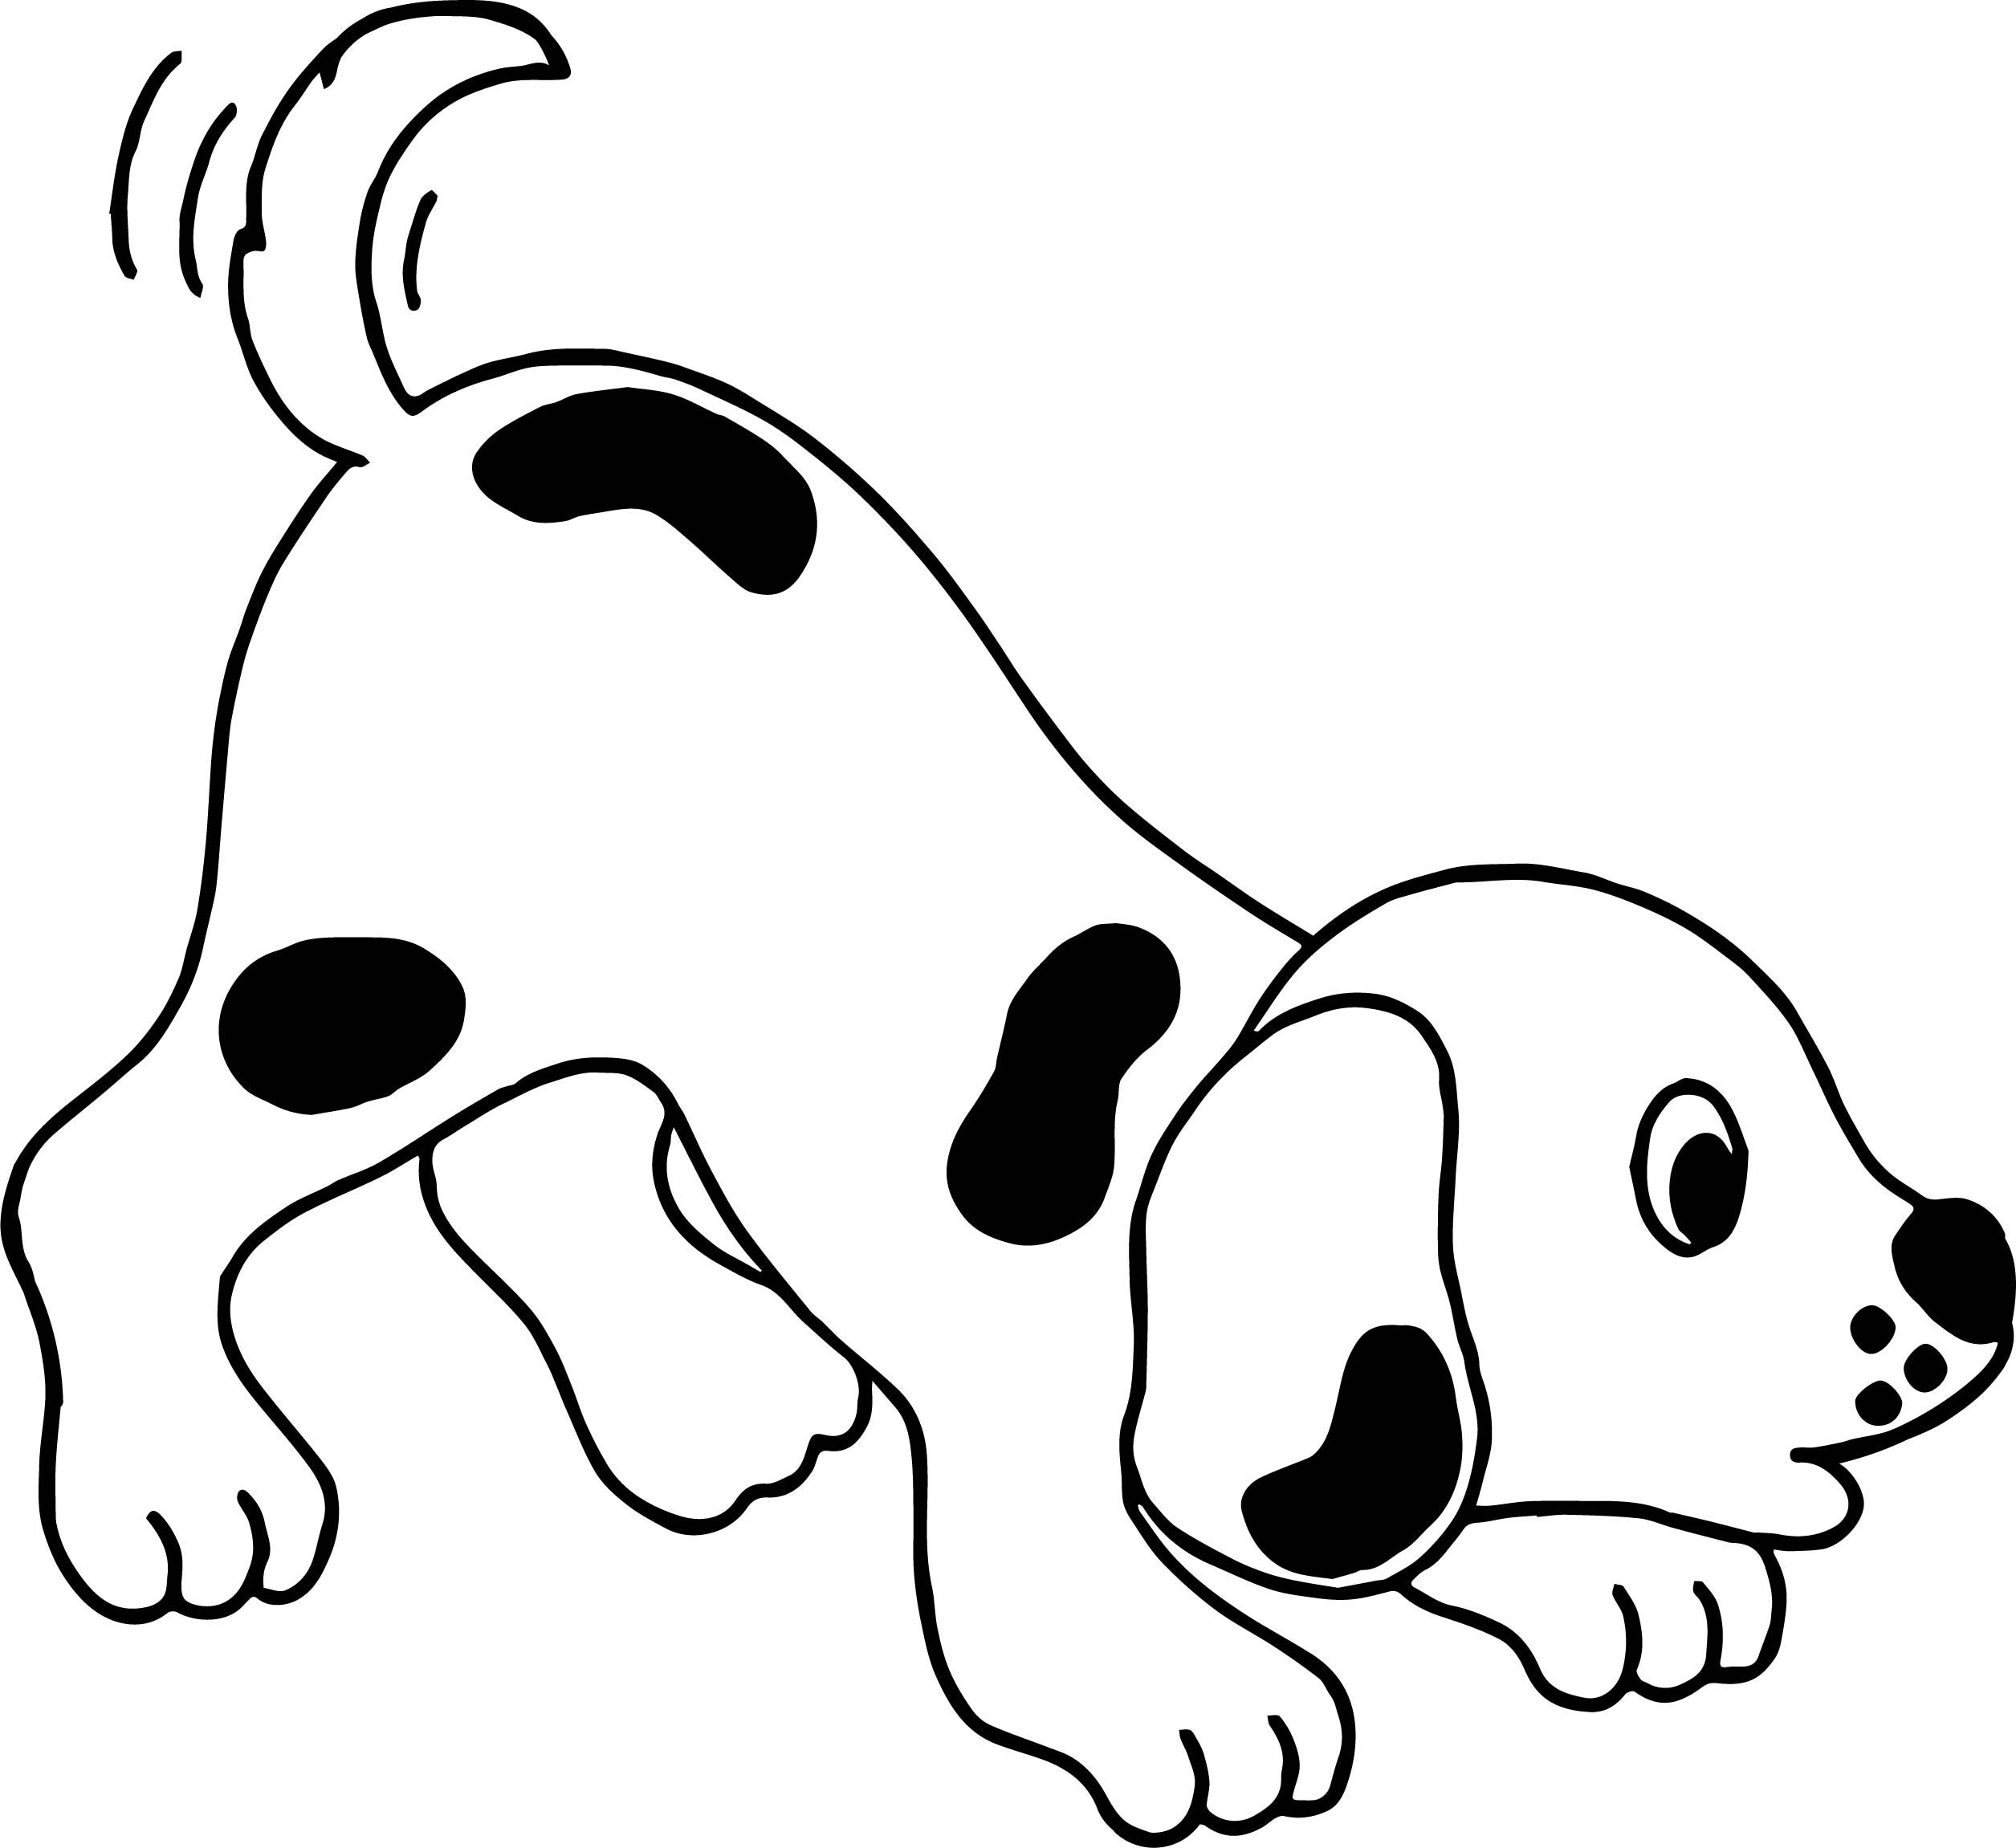 102 Dalmations Coloring Pages 9 Disney Drawings Disney Coloring